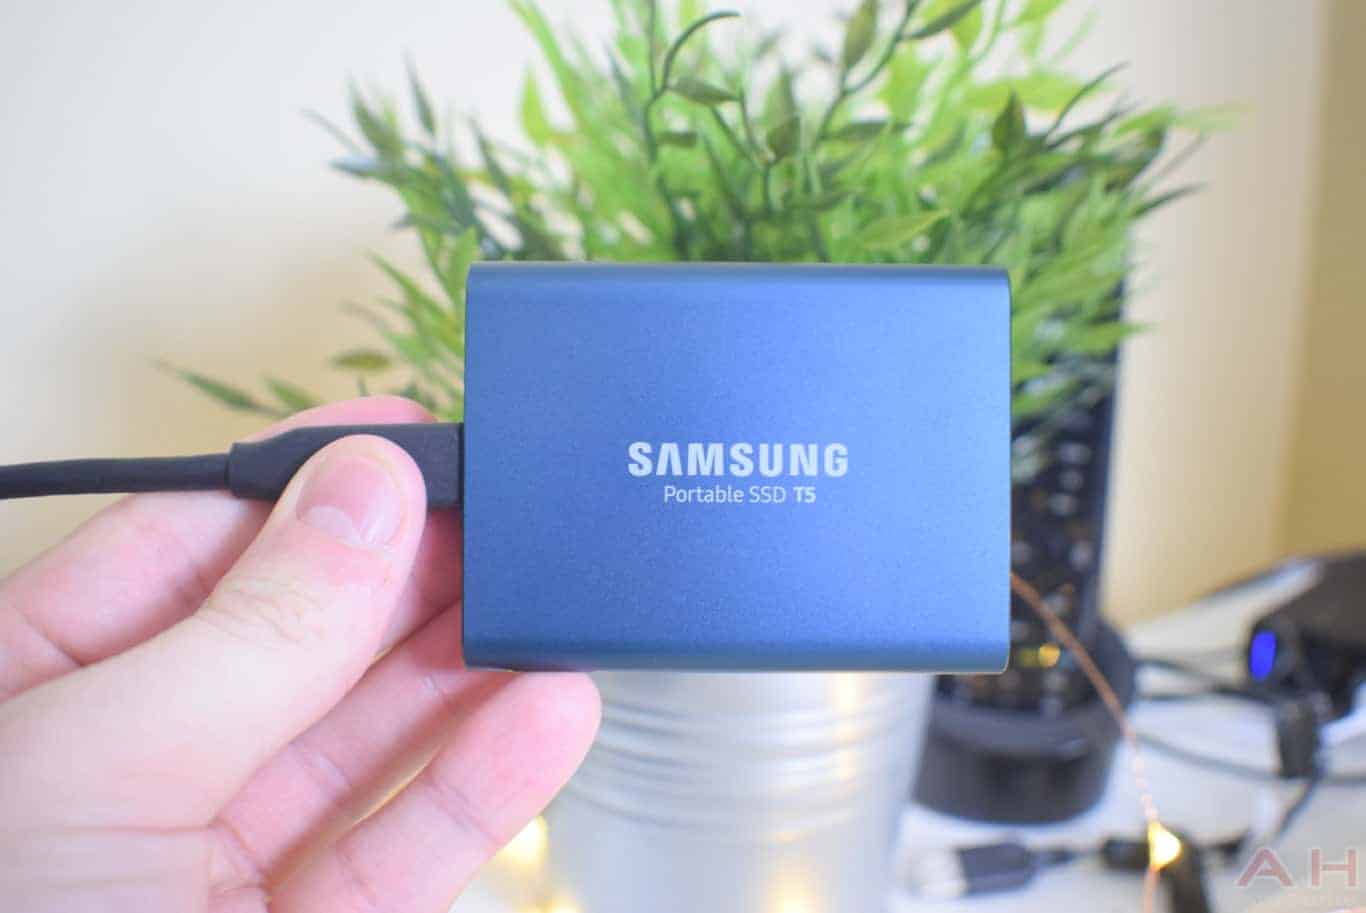 Samsung T5 SSD Review AM AH 0040